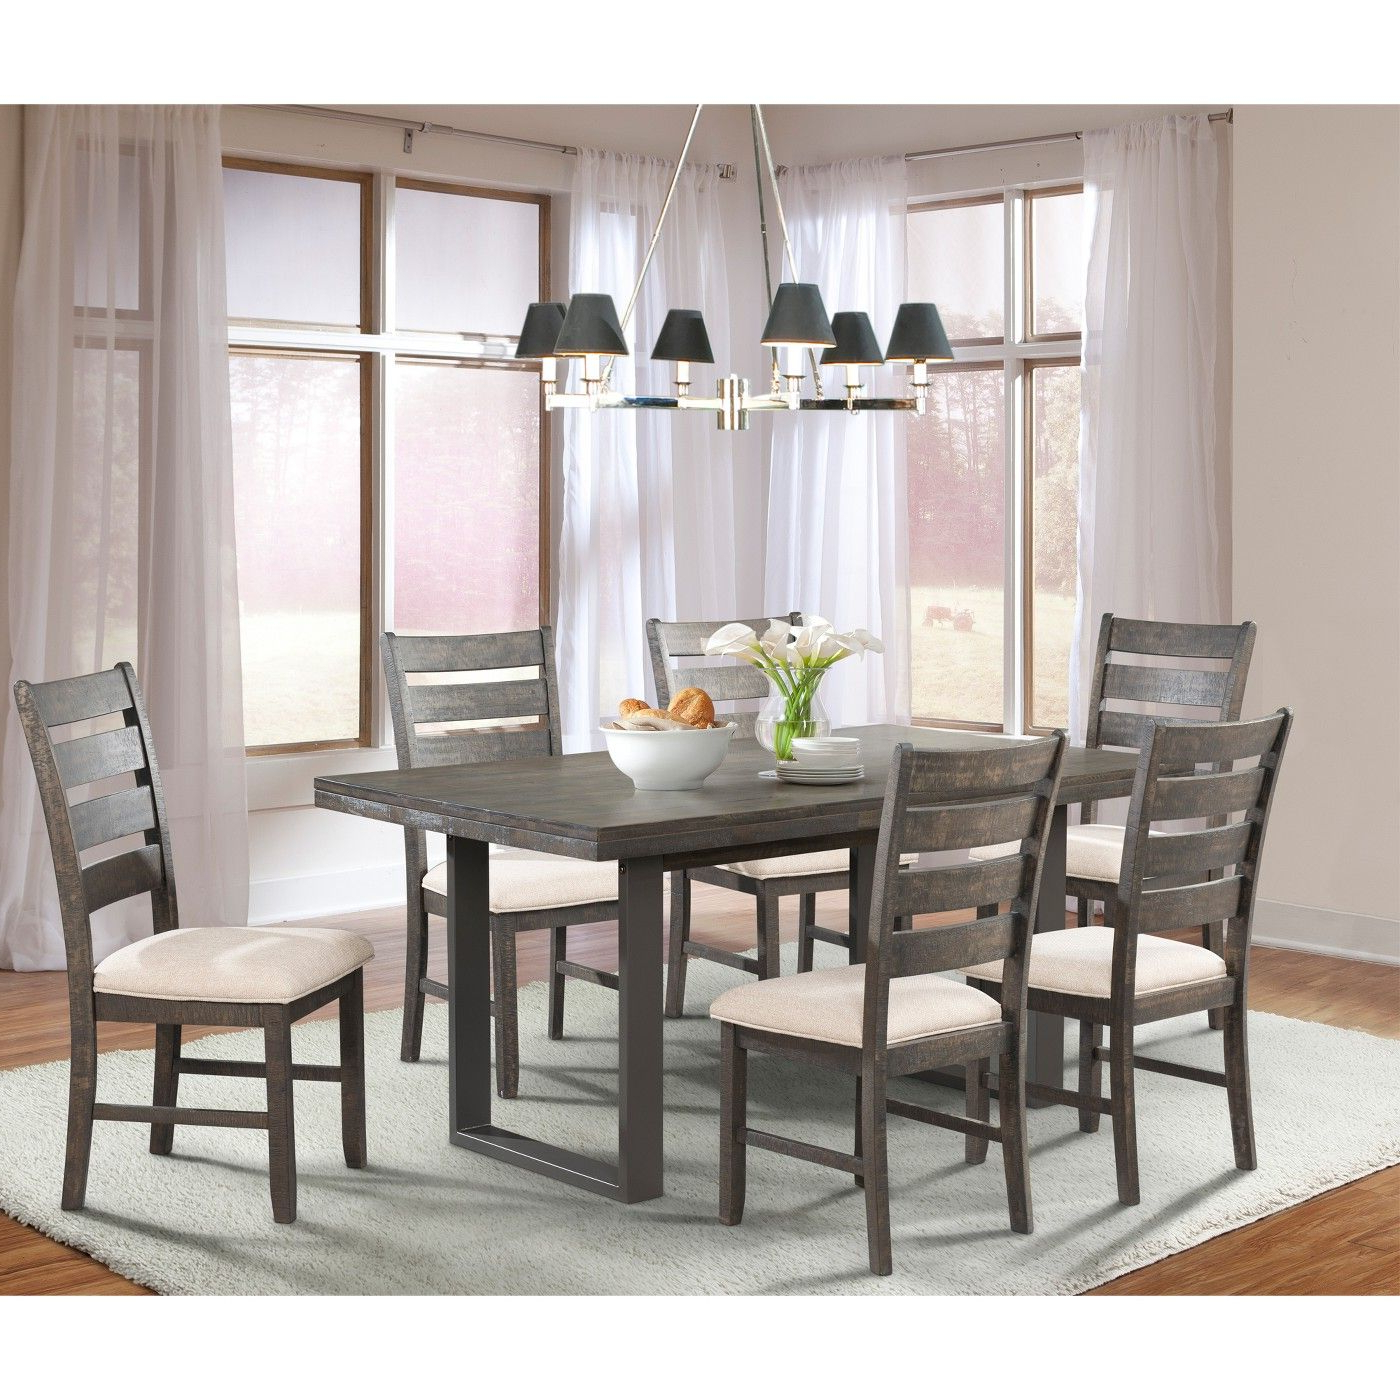 Small Dining Tables With Rustic Pine Ash Brown Finish Regarding Newest Sullivan 7Pc Dining Set Table And 6 Side Chairs Dark Ash (View 12 of 25)